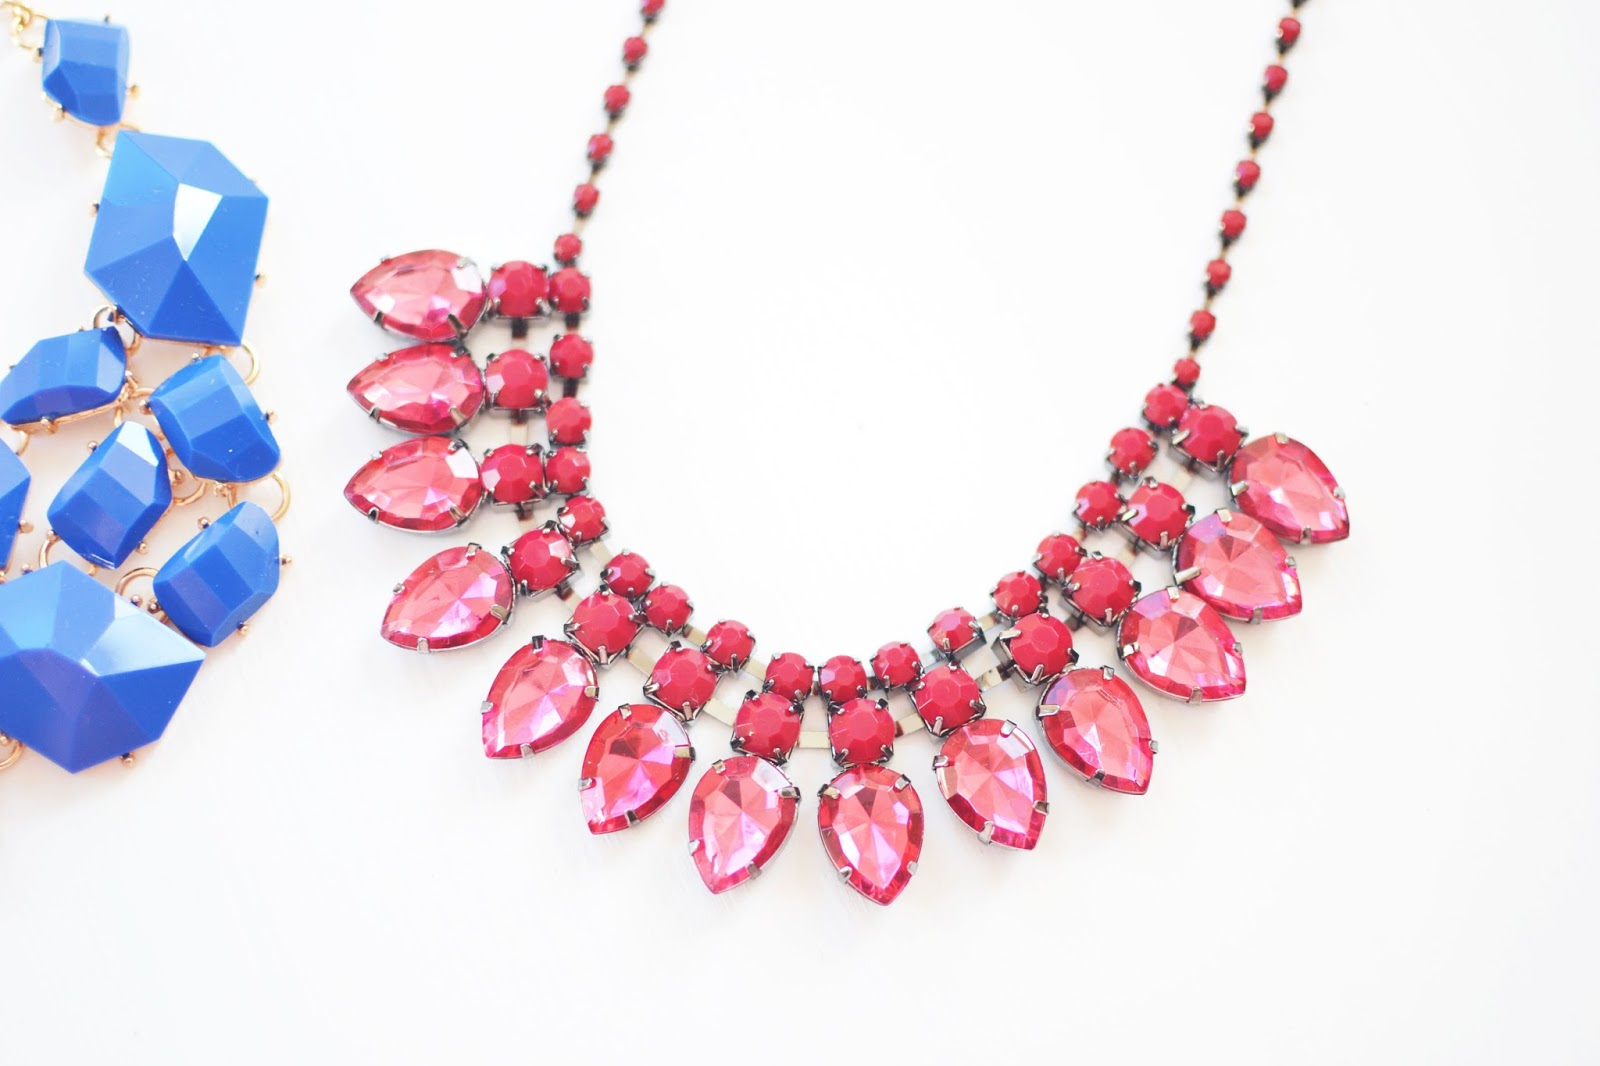 lidl fashion range, affordable statement necklace, statement necklaces